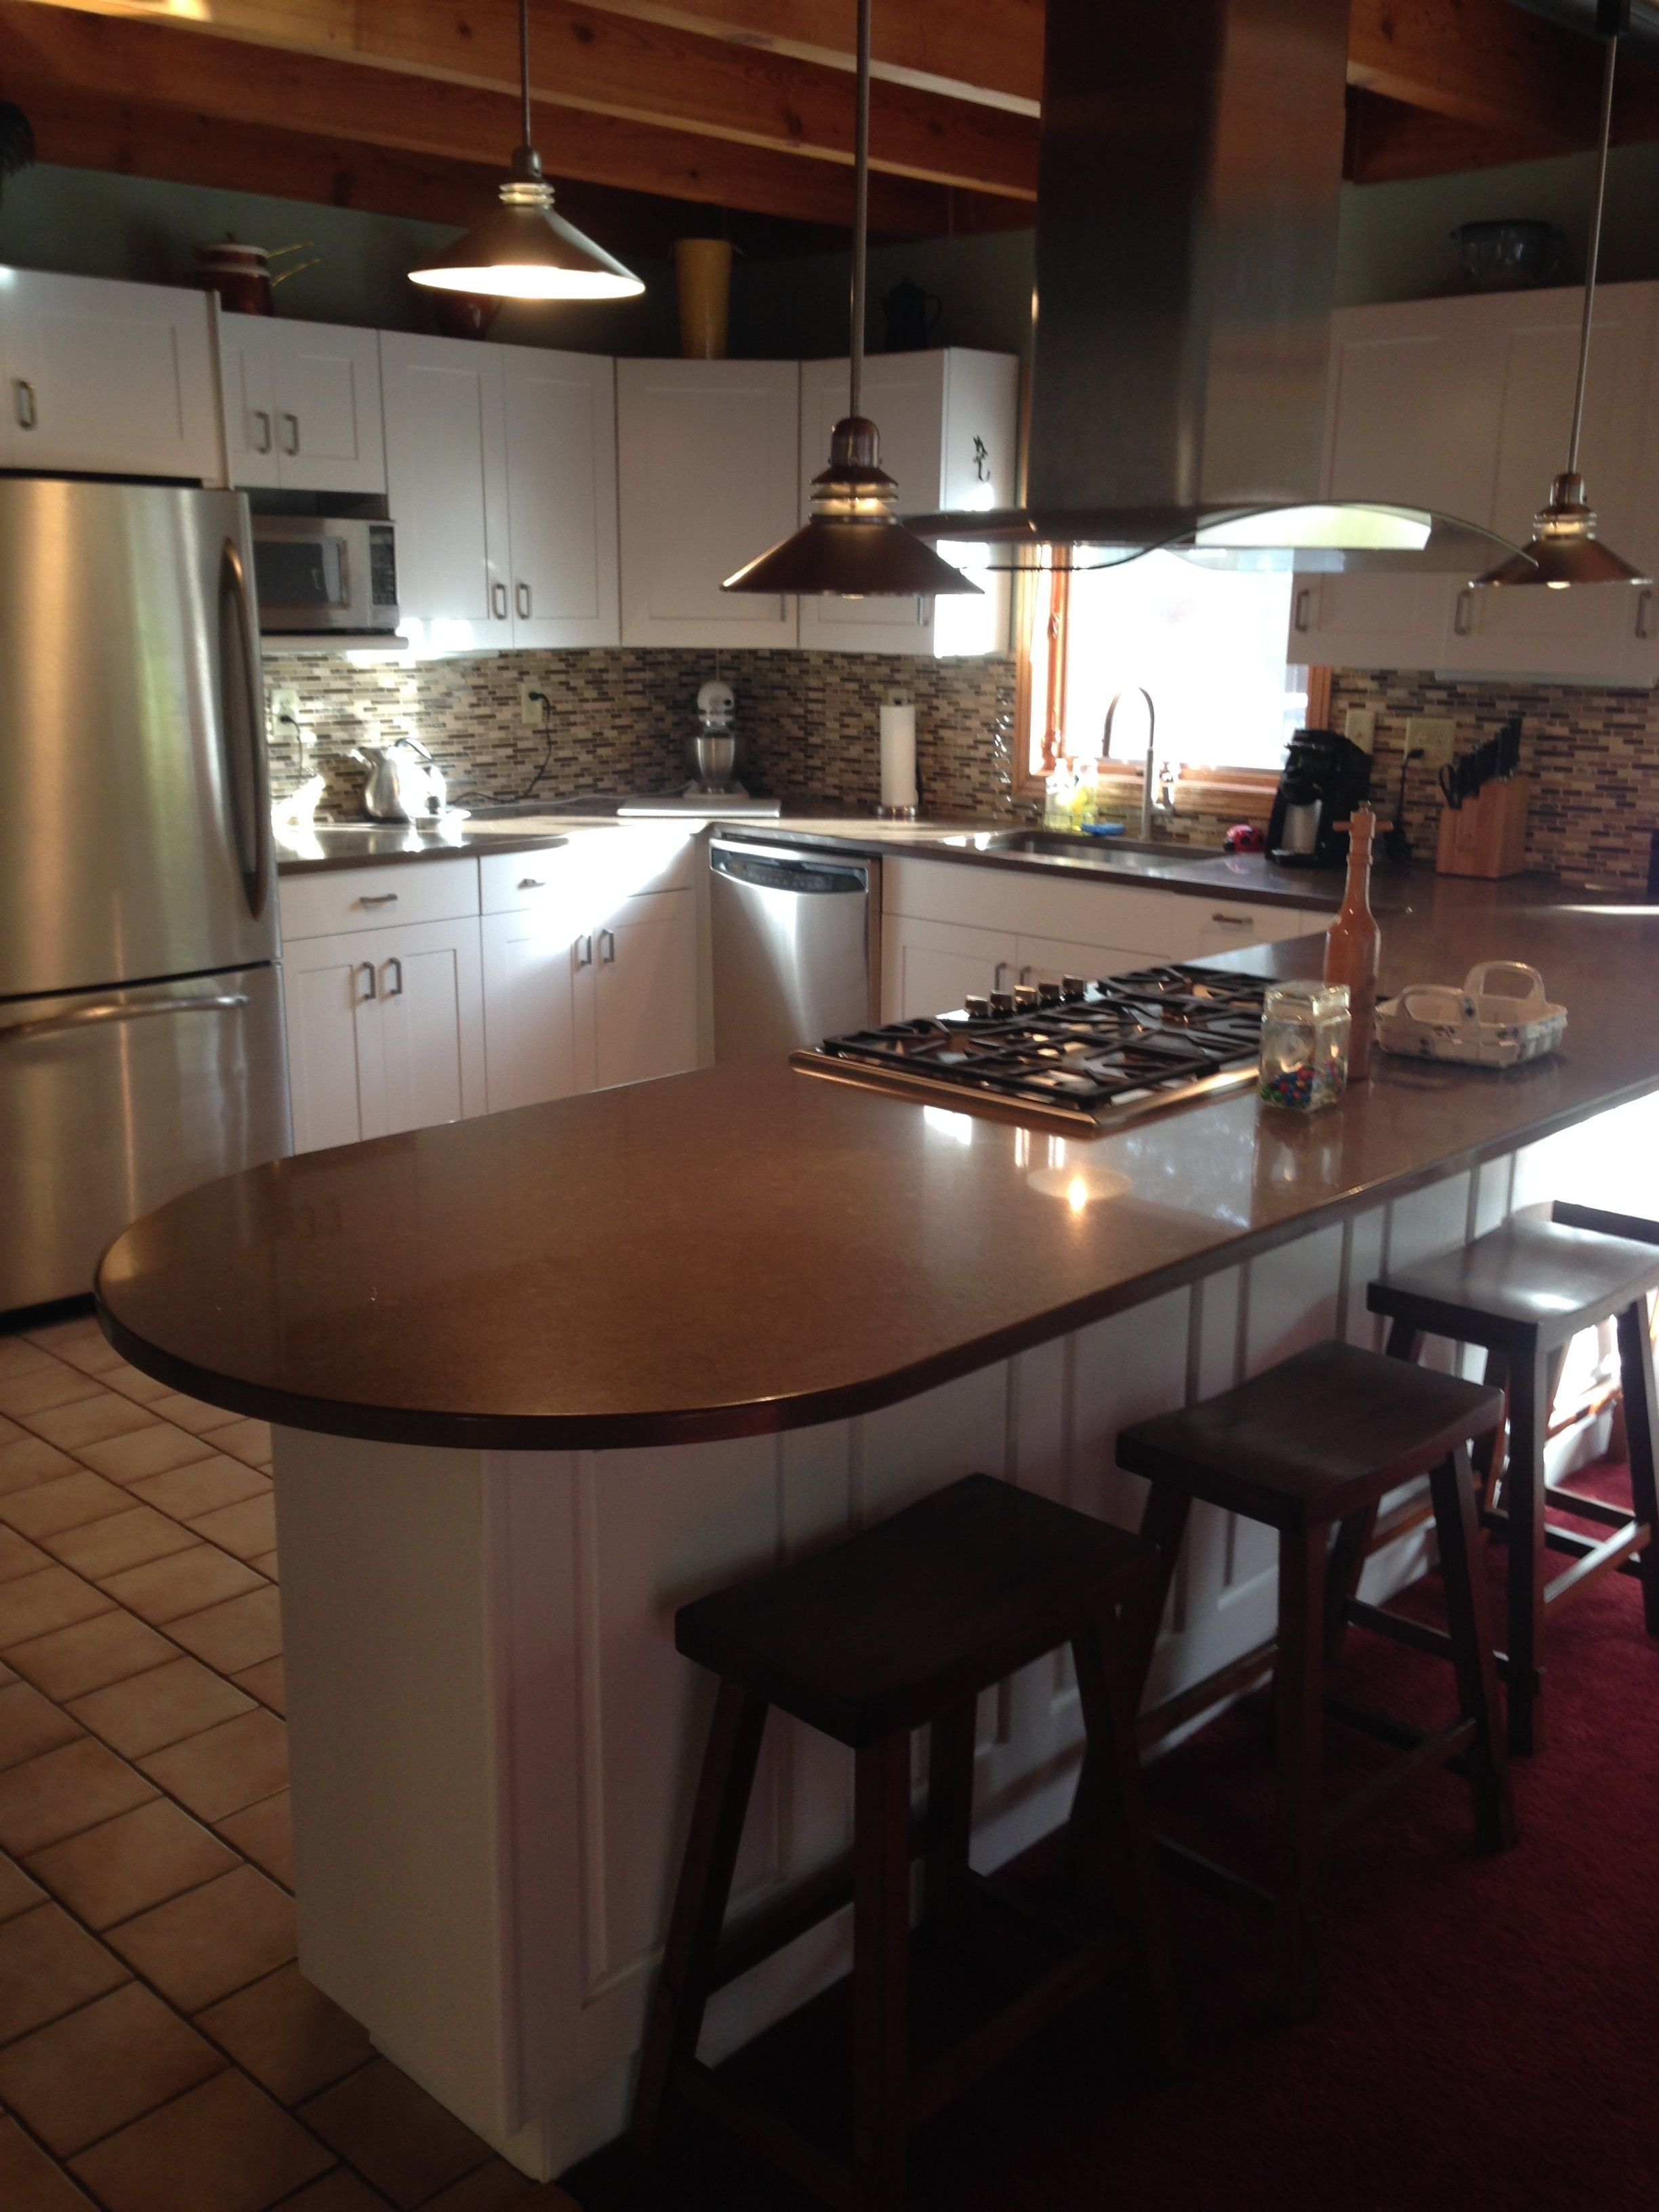 Fully insured custom kitchen and bath design/build firm ...